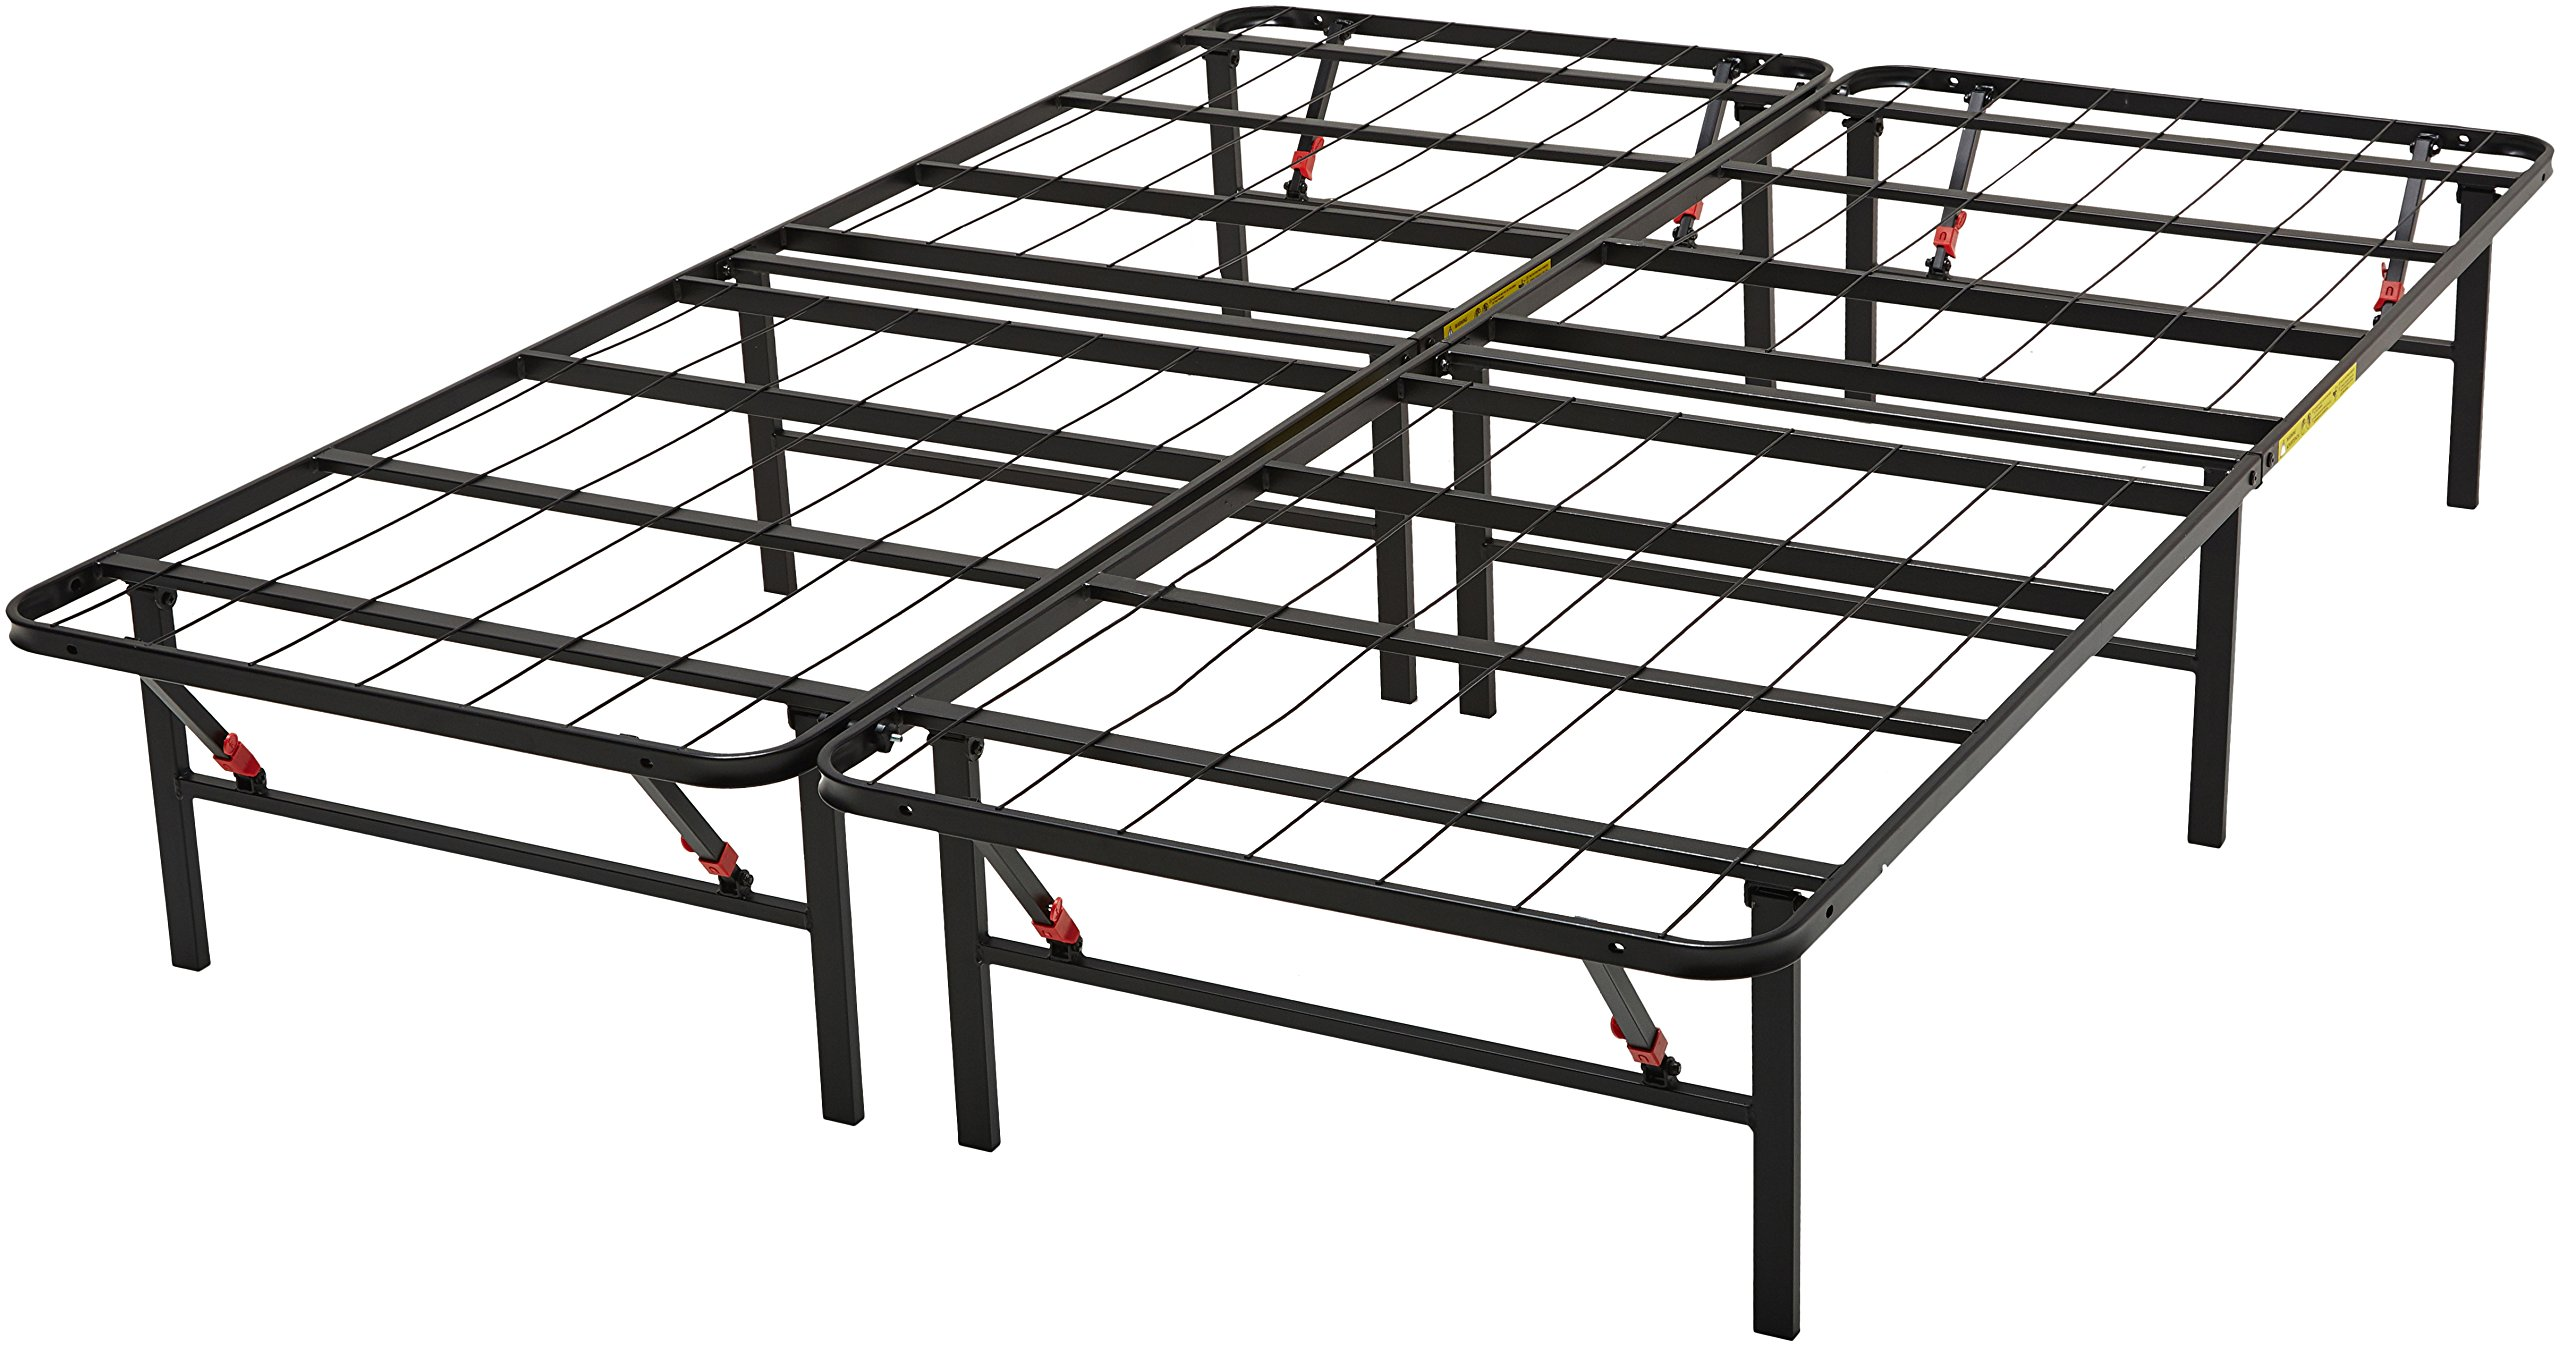 AmazonBasics Platform Bed Frame, Black, Queen